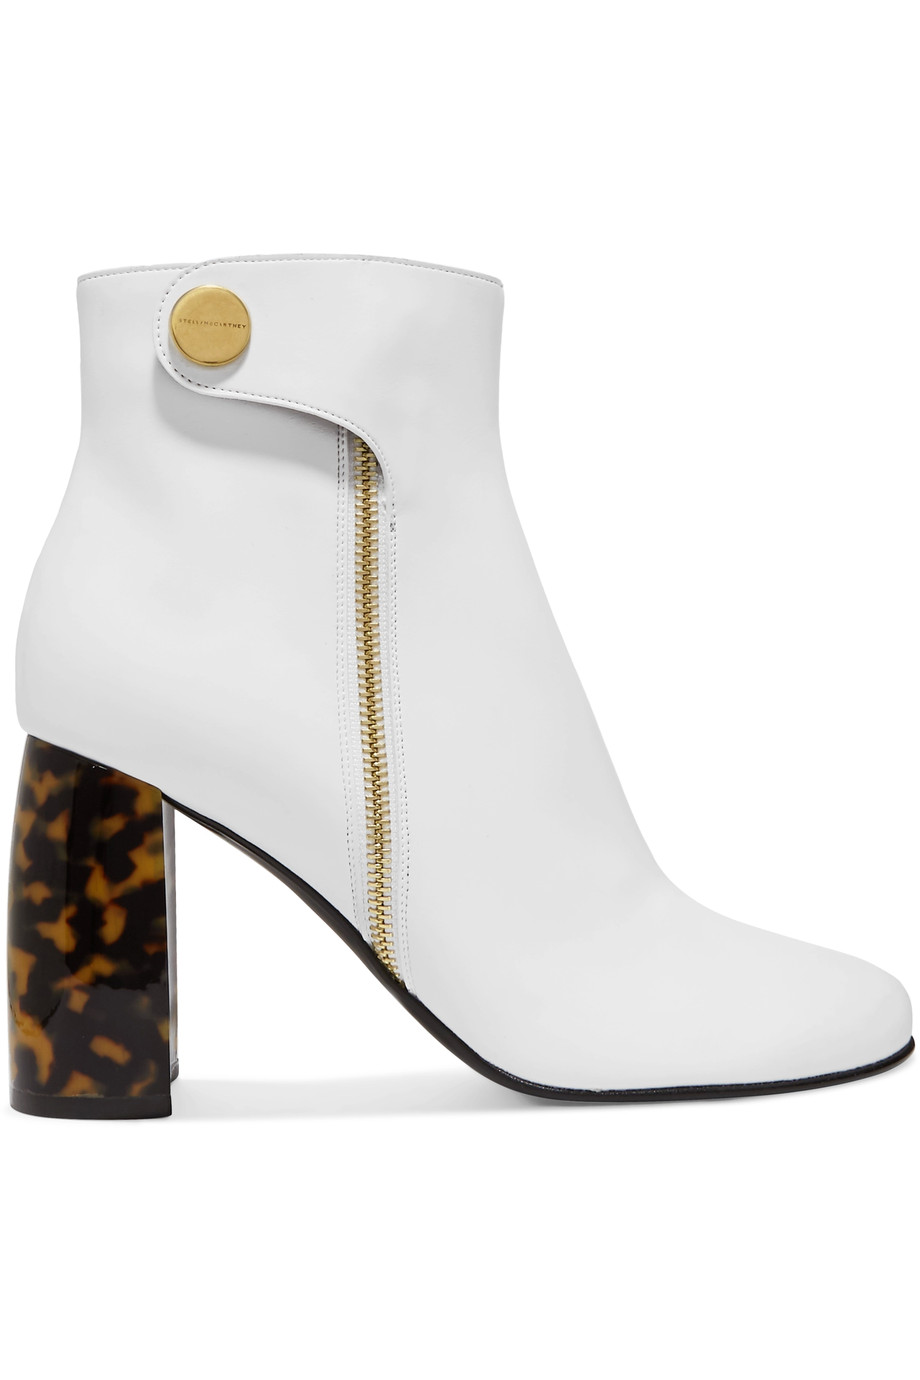 Hey big spender! Spend a little time with Stella McCartney's vegan boots, from a selection at Net-A-Porter